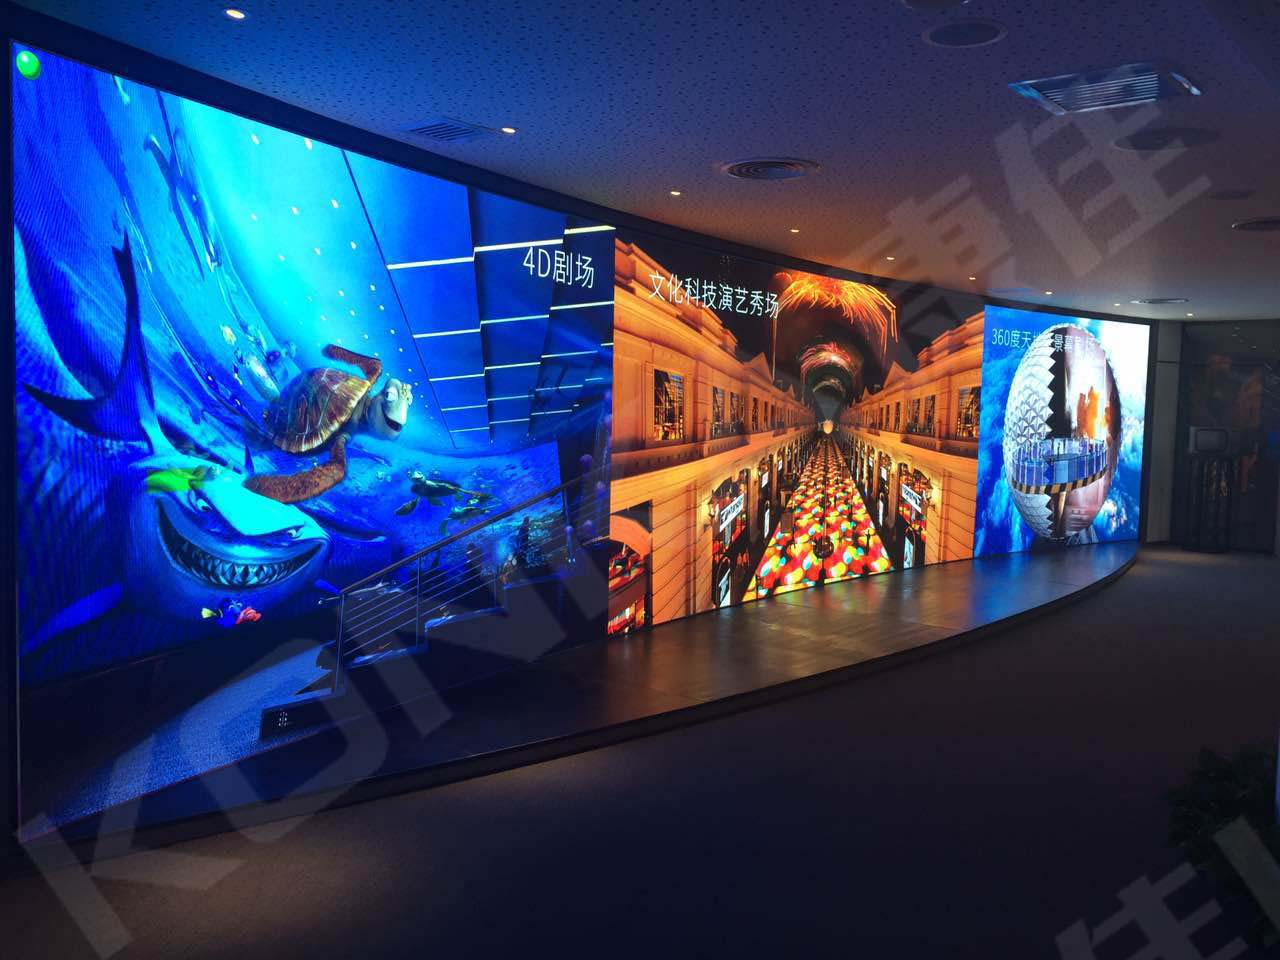 "<span style=""font-size:13.3333px;"">LED screen in showroom</span>"